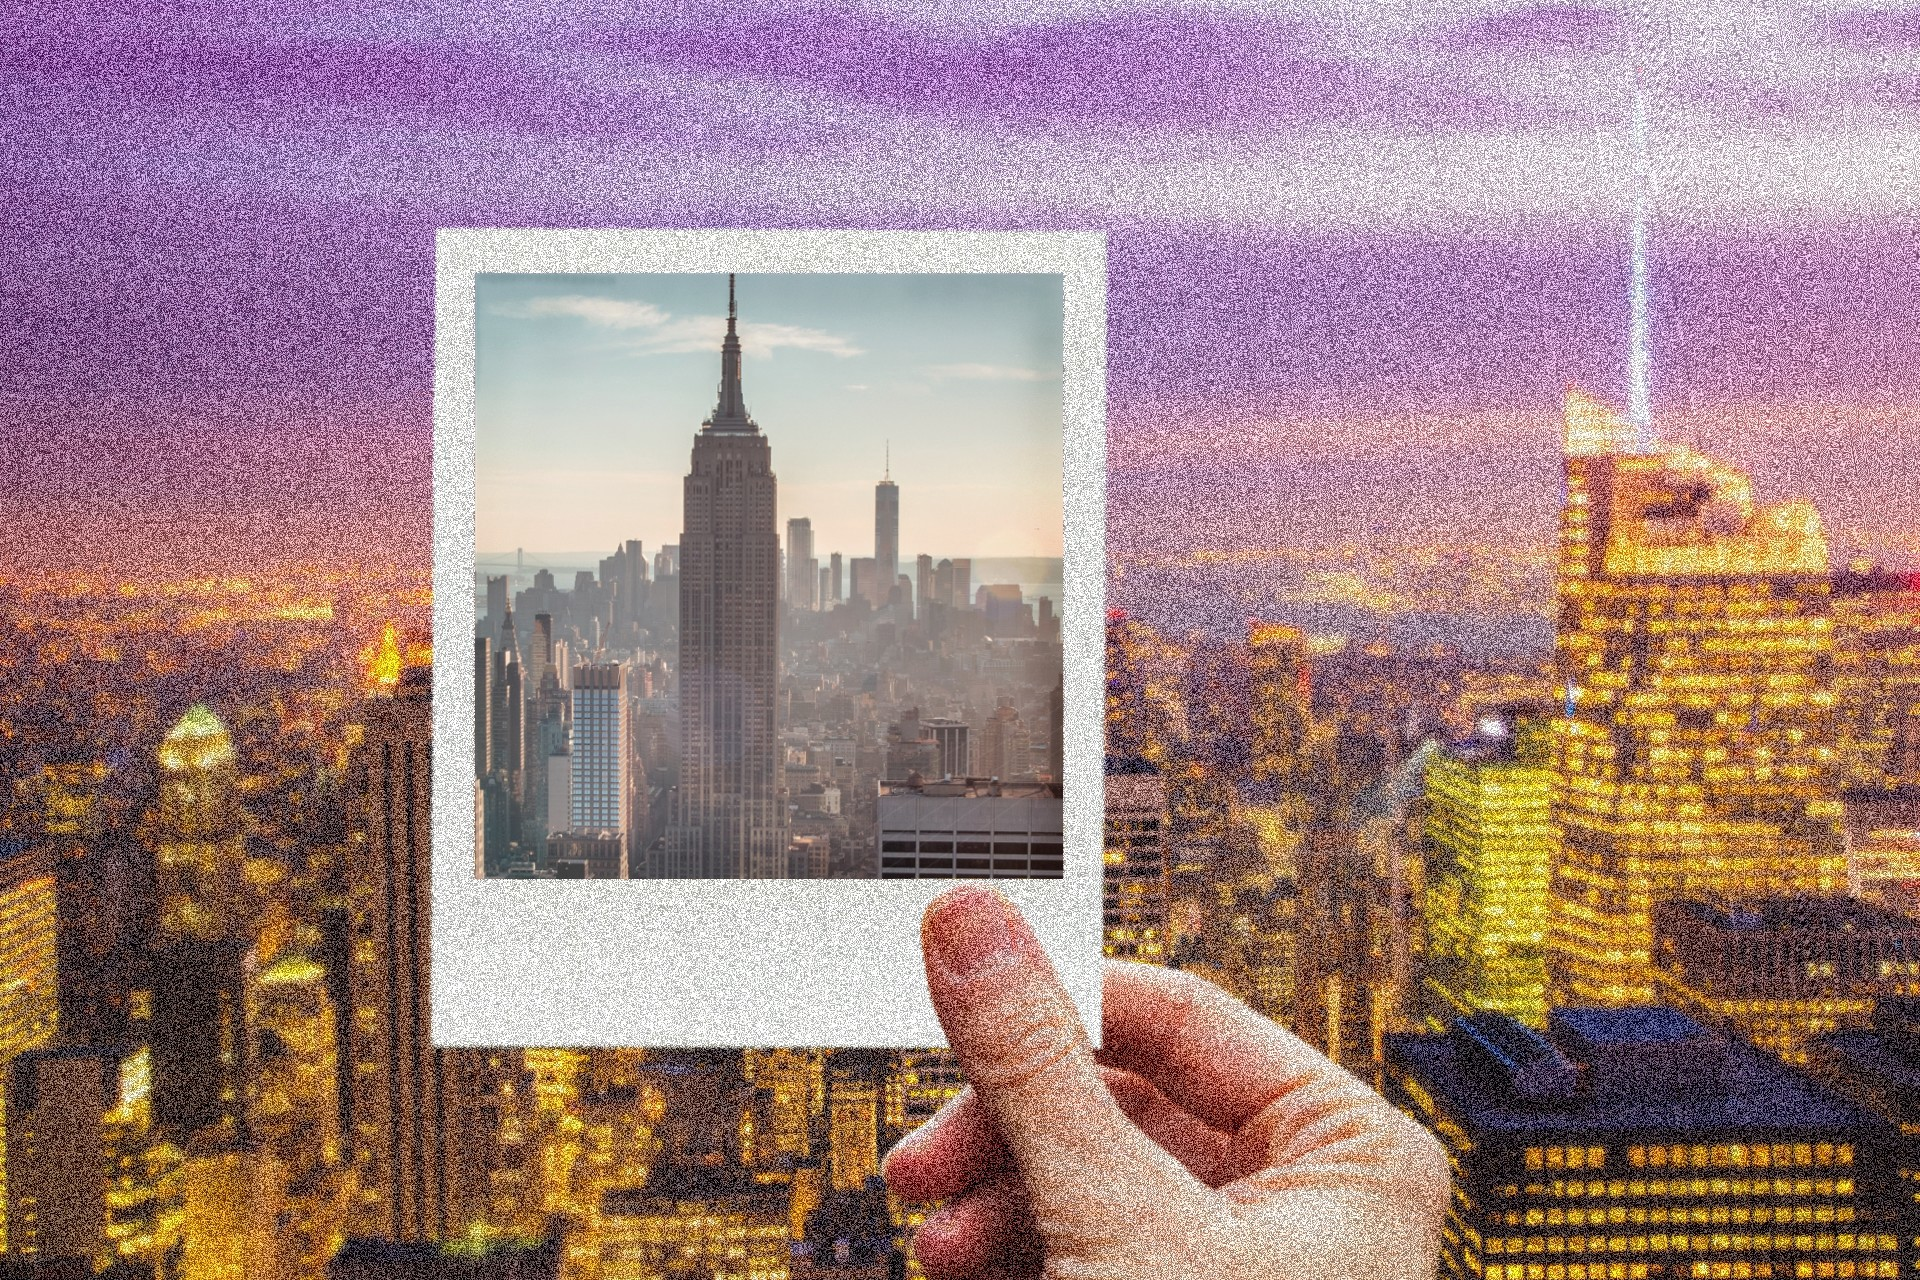 A hand holding a Polaroid photo of NYC up to the NYC skyline at evening.